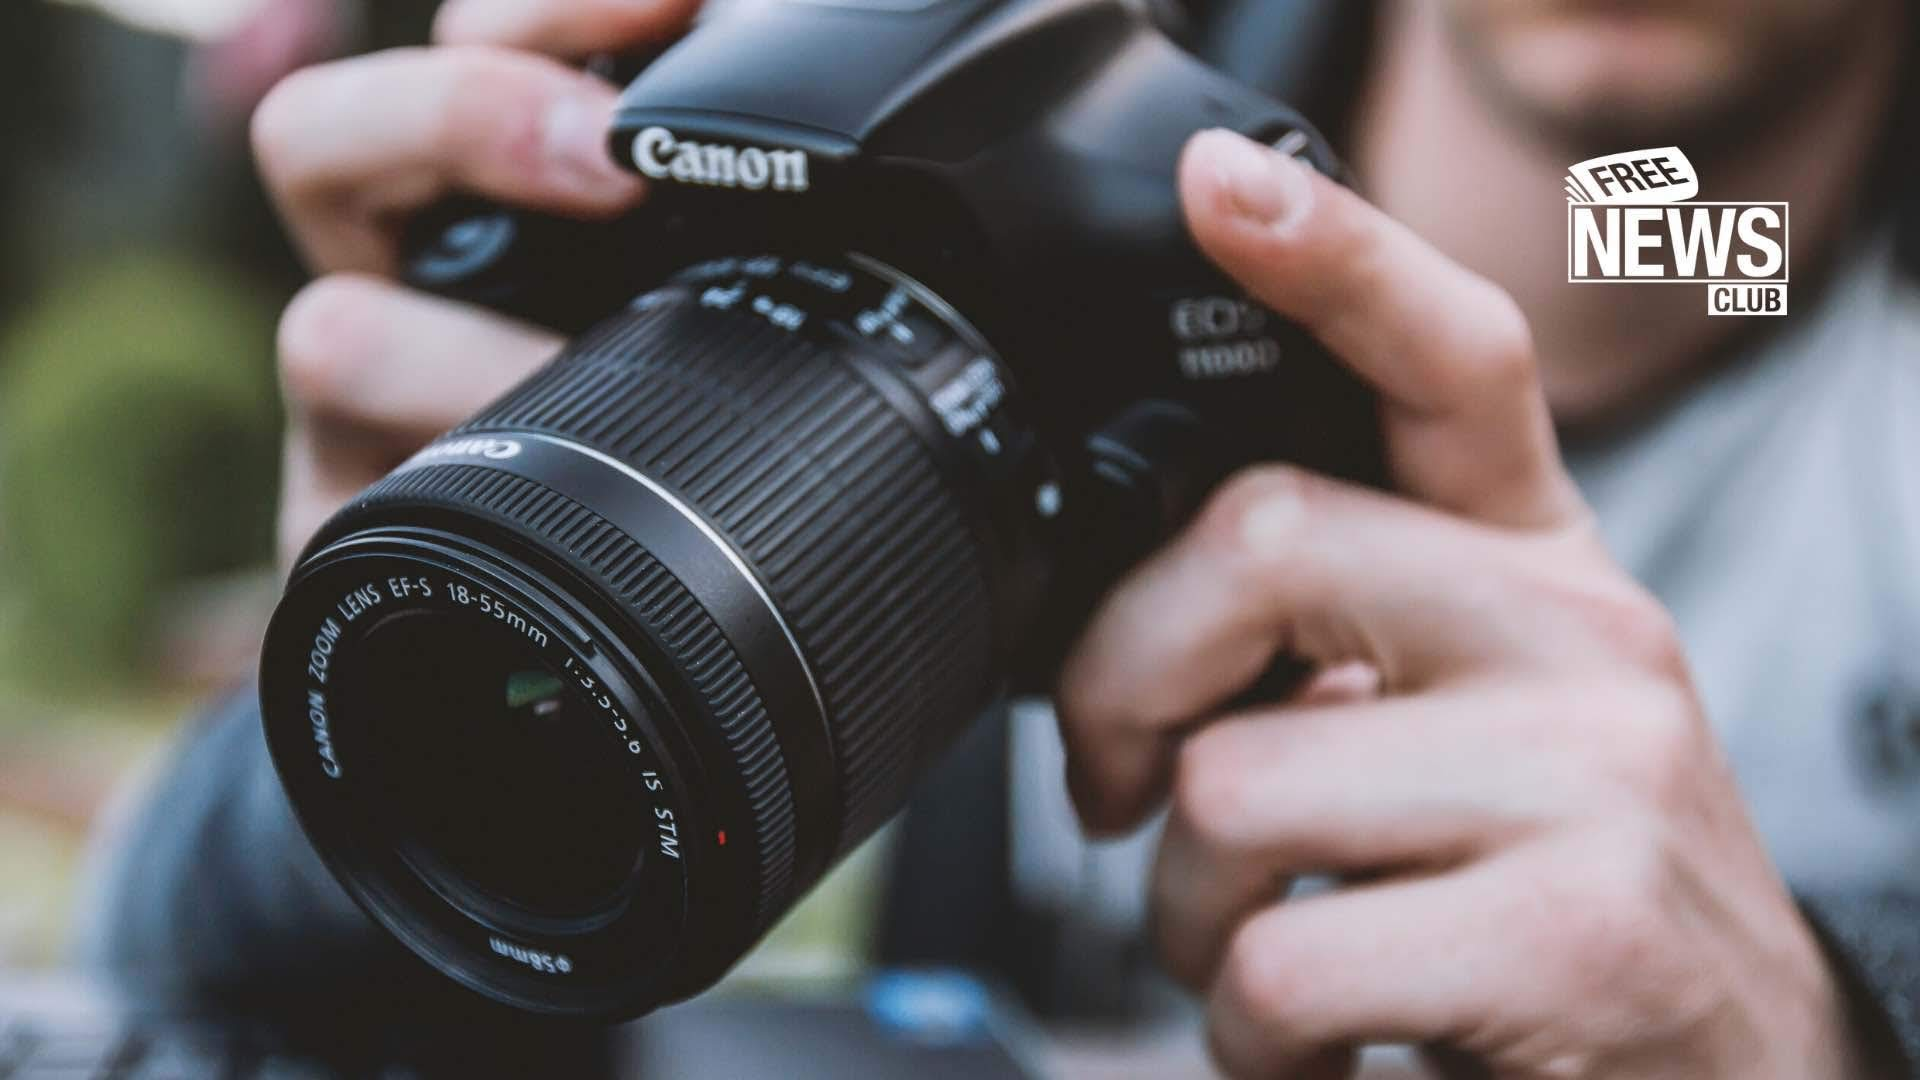 Canon Camera - Free News Club - The Reason You Take Bad Pictures